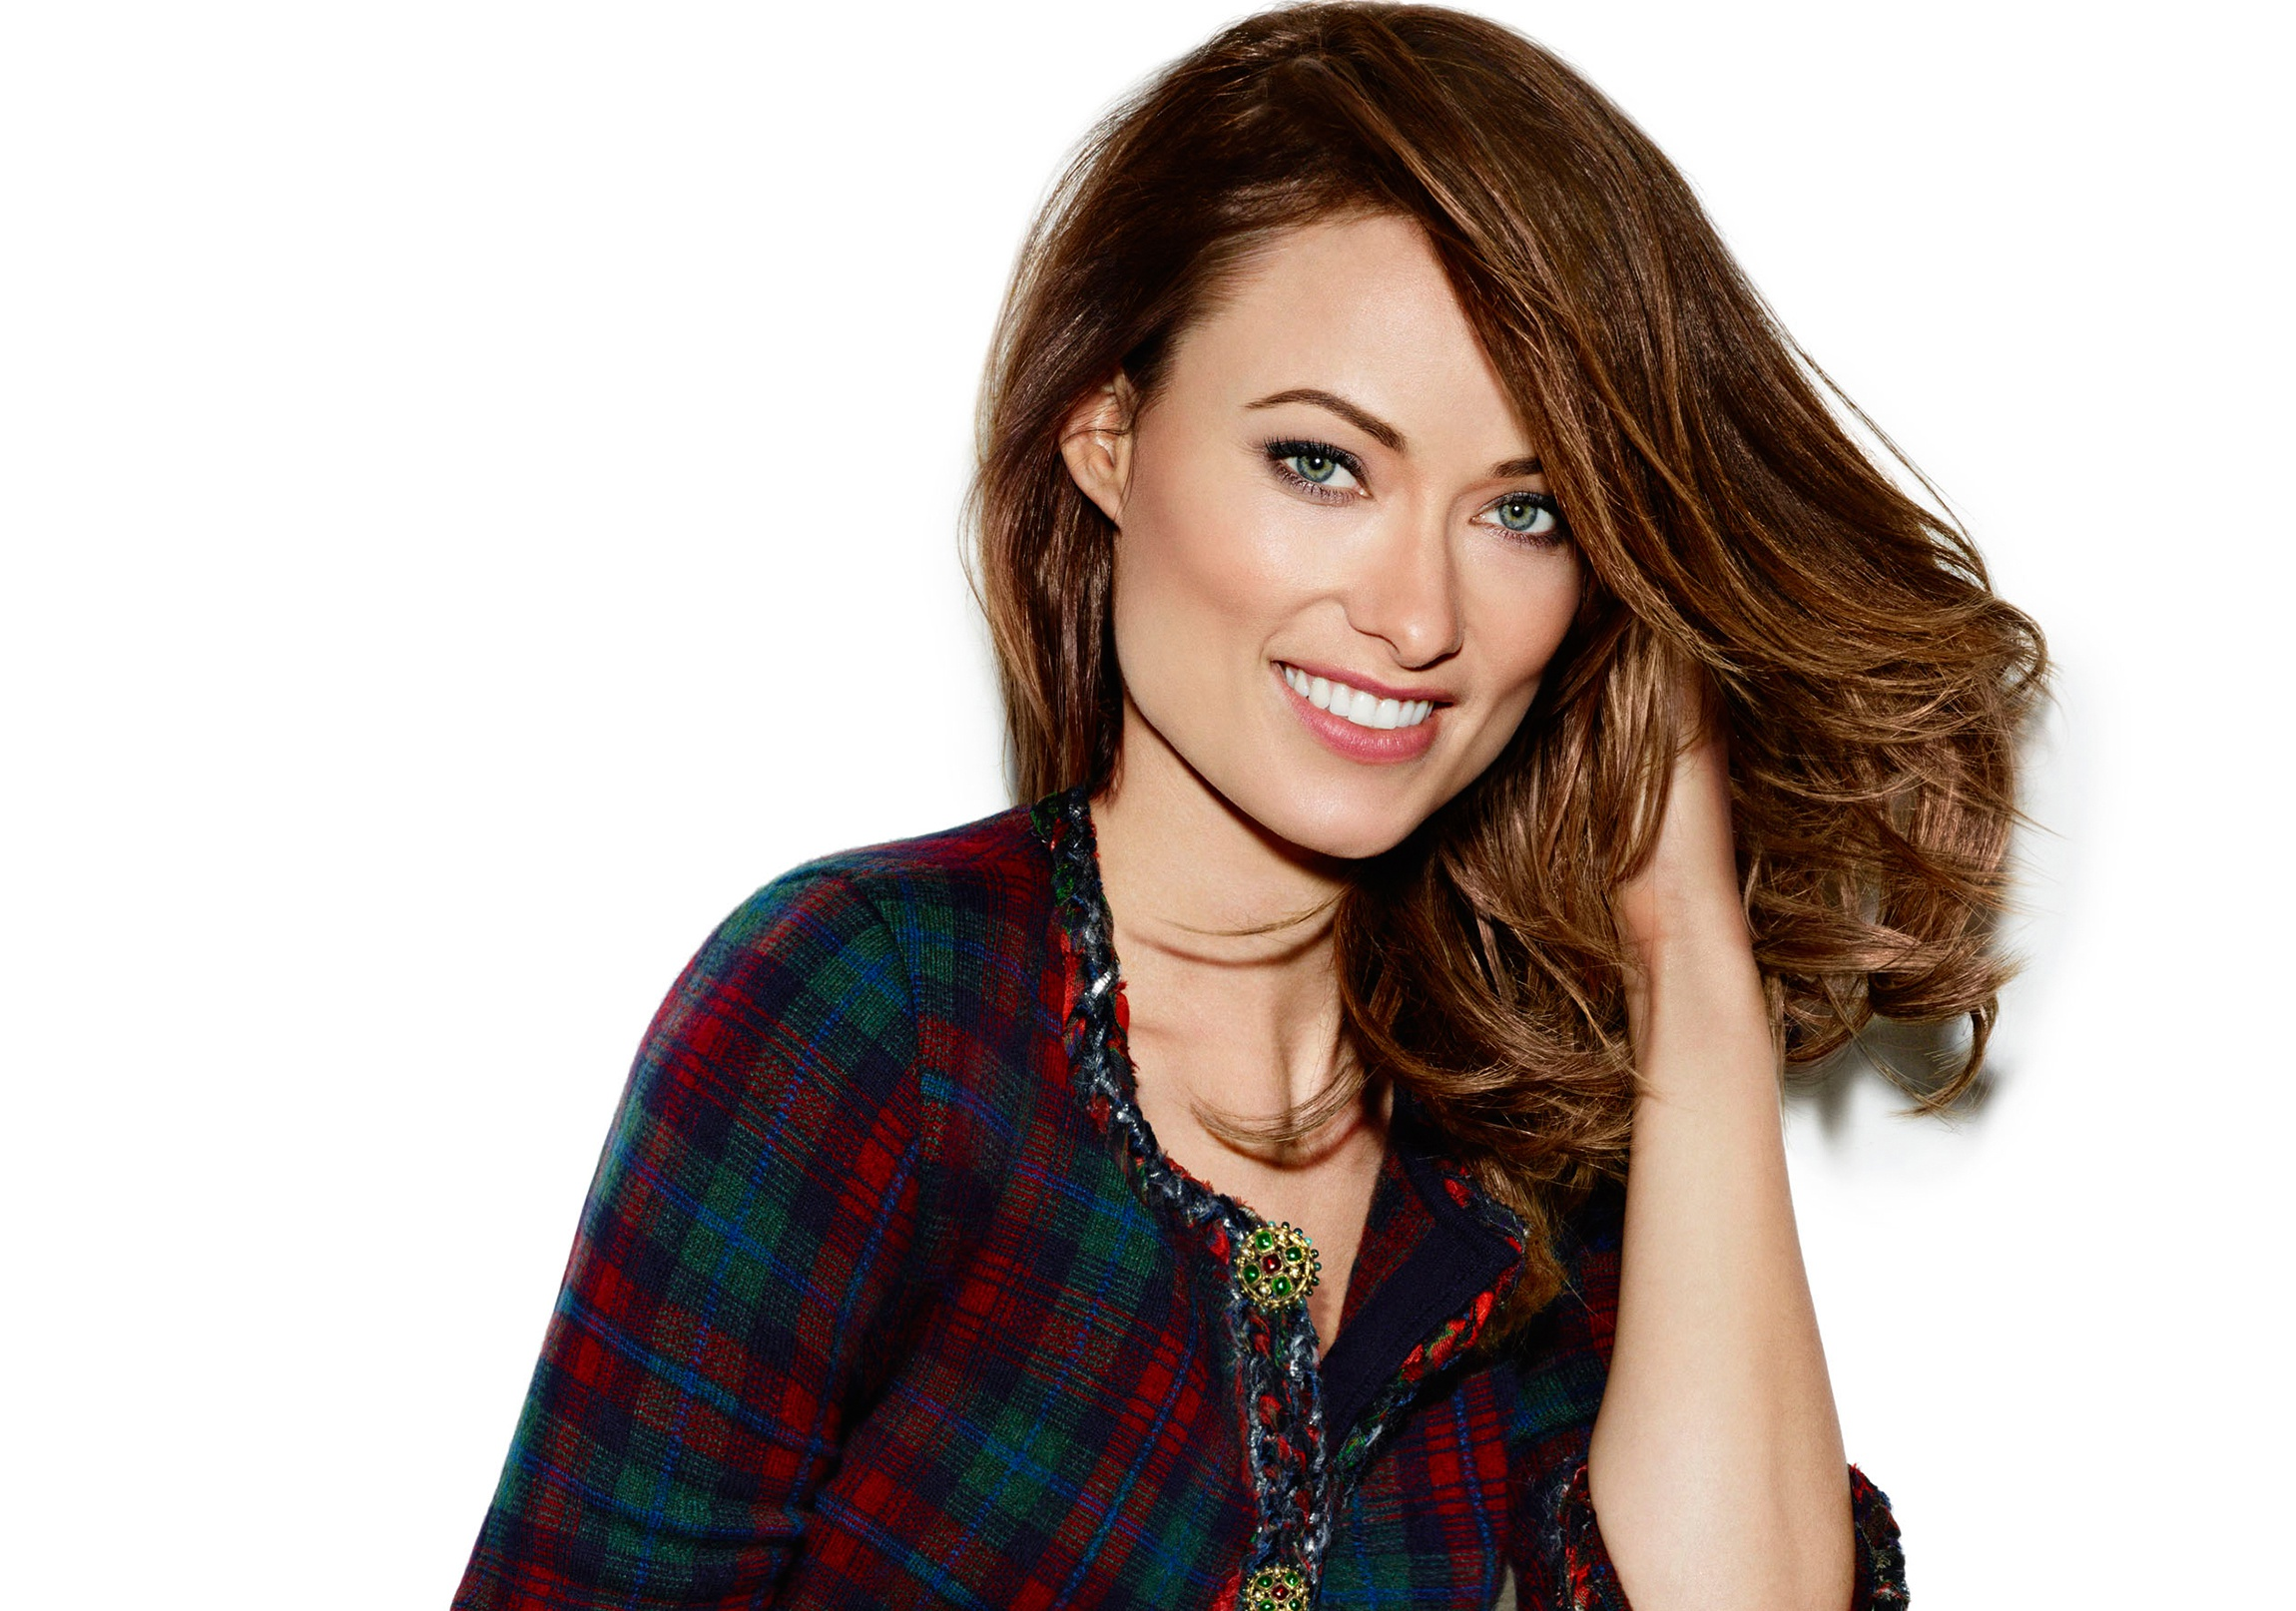 212 olivia wilde hd wallpapers | background images - wallpaper abyss